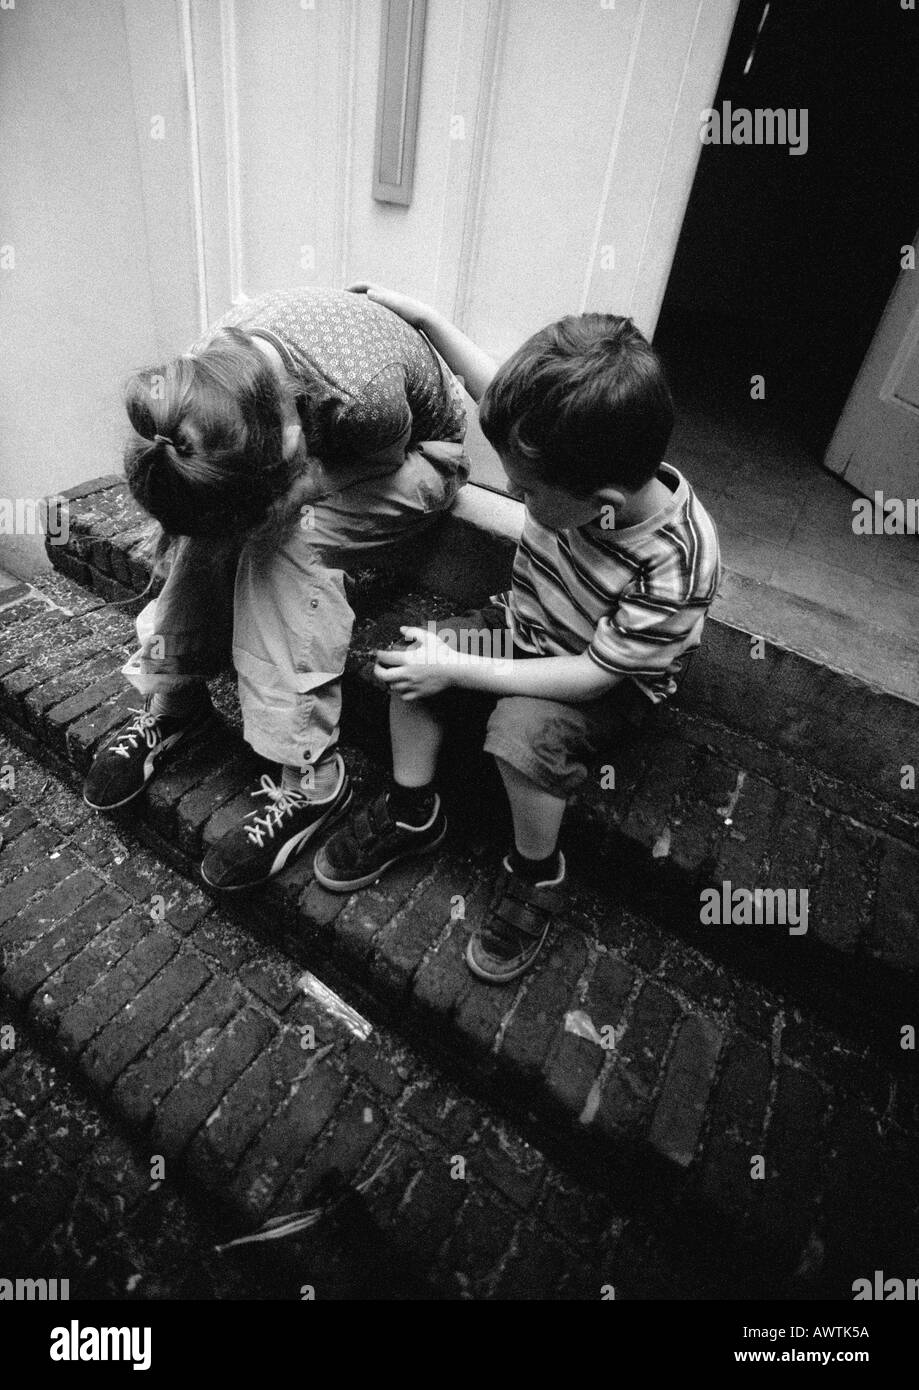 Two children on stairs, one holding head in hands, b&w - Stock Image